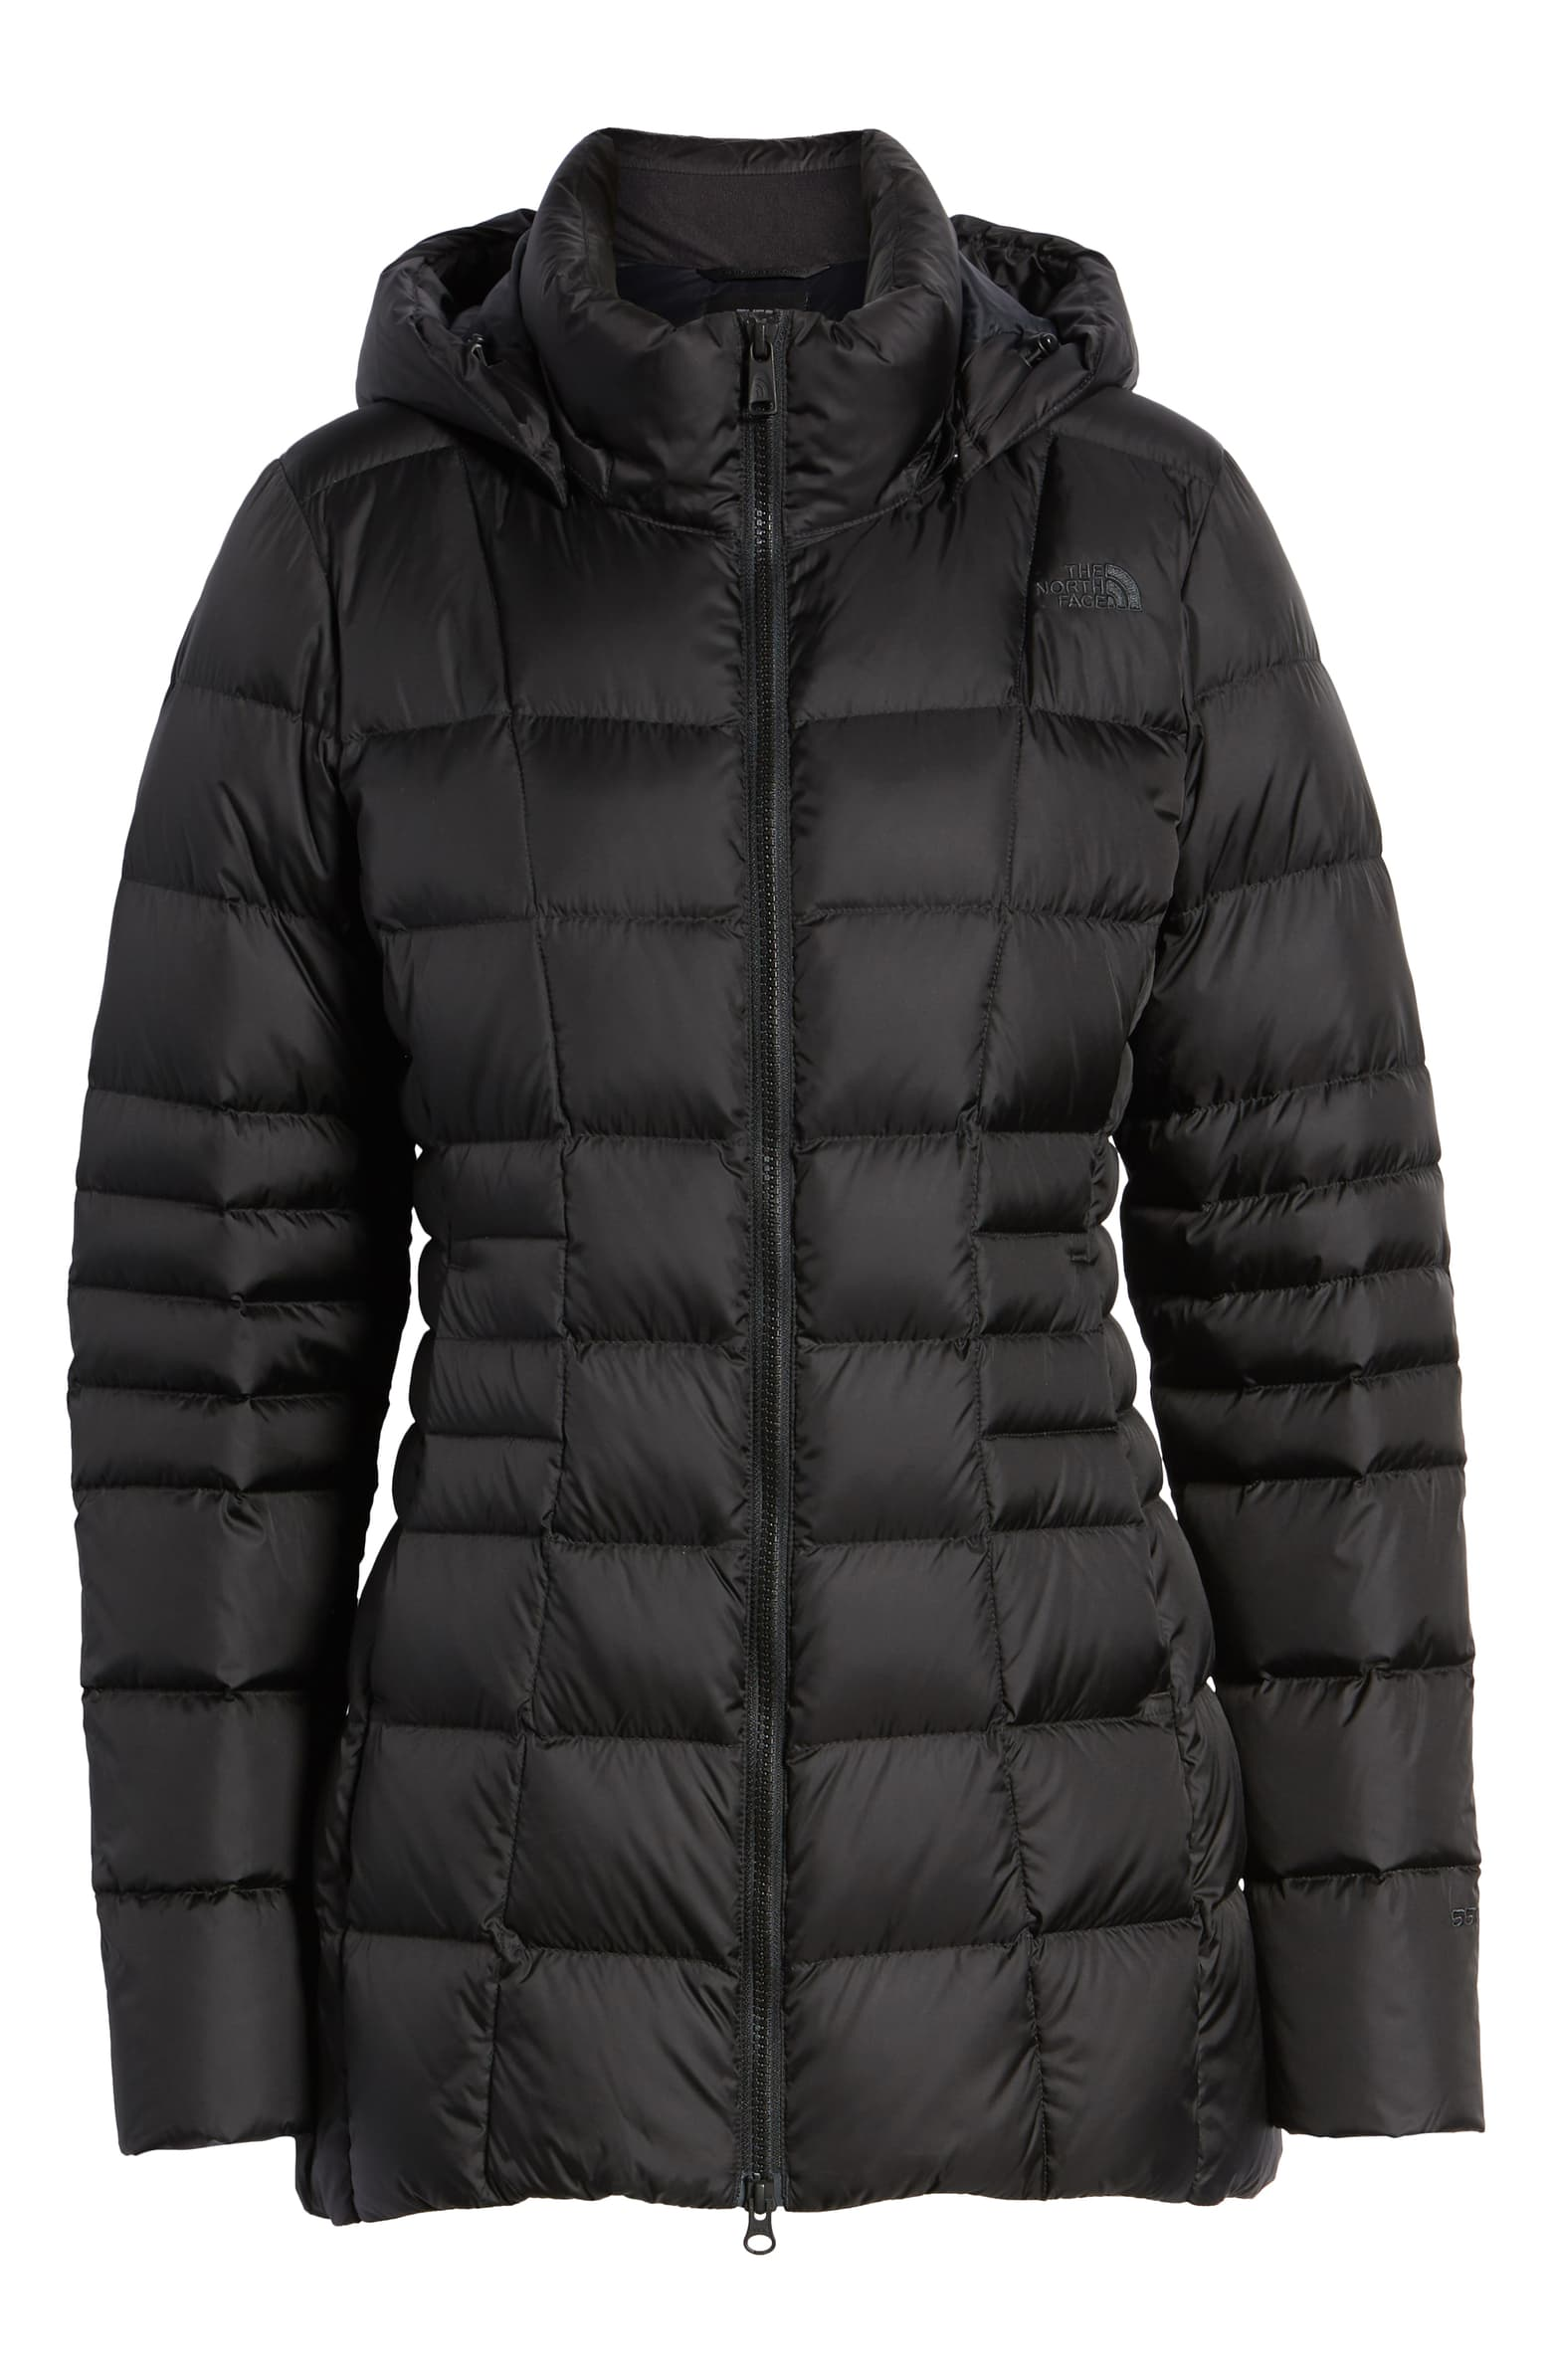 "Because you live in Seattle, check out this{&nbsp;}<a  href=""https://www.nordstrom.com/s/the-north-face-transit-ii-down-jacket/4434554?origin=keywordsearch-personalizedsort&breadcrumb=Home%2FAll%20Results&color=tnf%20blk"" target=""_blank"" title=""https://www.nordstrom.com/s/the-north-face-transit-ii-down-jacket/4434554?origin=keywordsearch-personalizedsort&breadcrumb=Home%2FAll%20Results&color=tnf%20blk"">North Face W Transit Jacket</a>{&nbsp;}$174.90 (after sale $249) (Image: Nordstrom)"